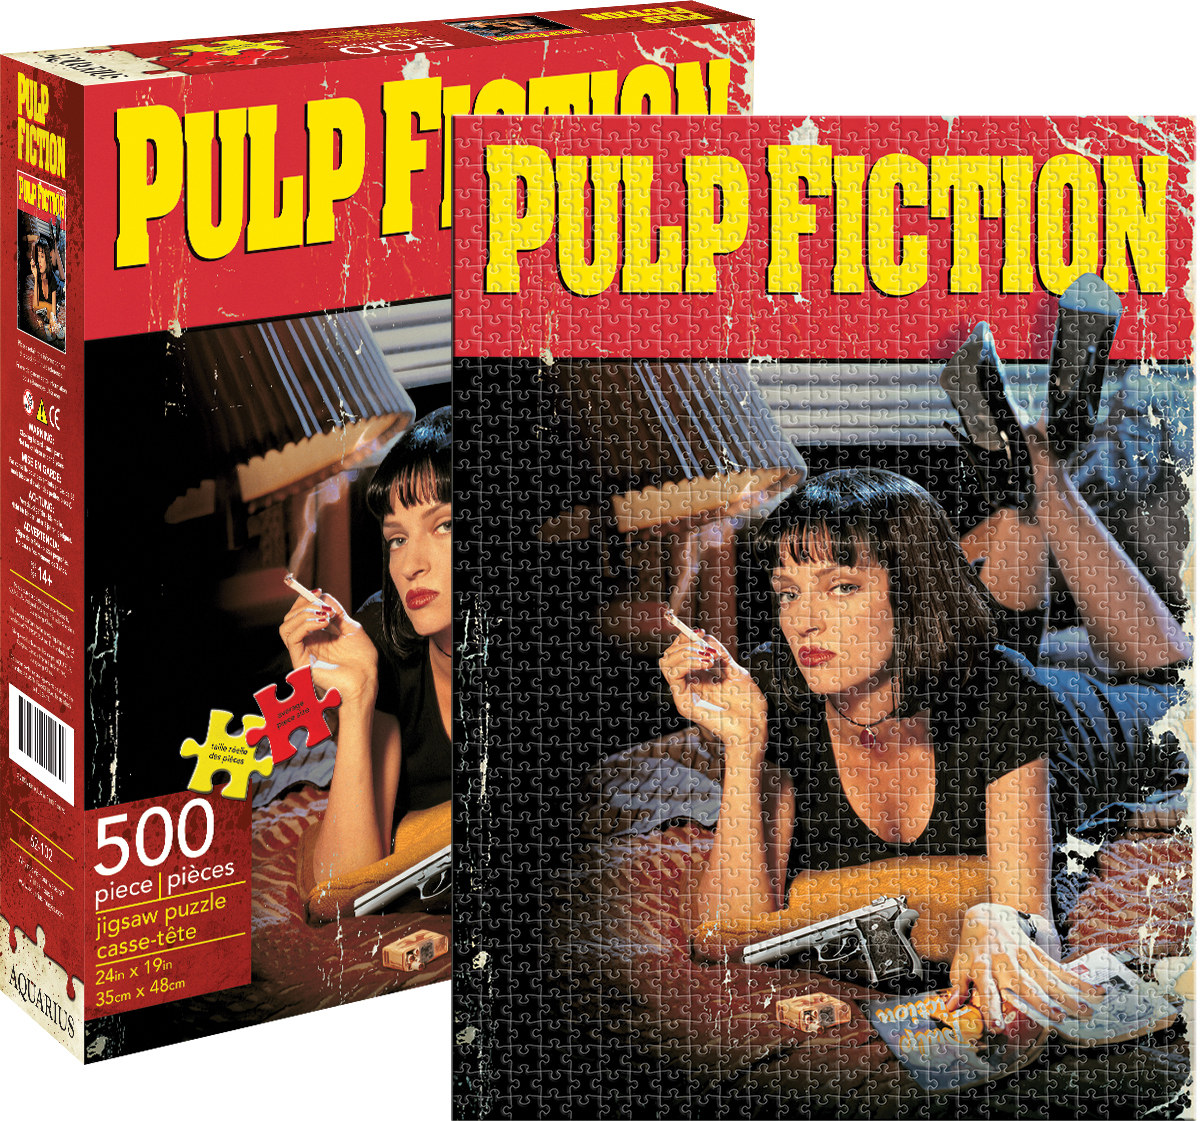 """quentin tarantinos pulp fiction created new genre for film lovers Like a shot of adrenaline to the heart, """"pulp fiction"""" changed the movie landscape when it opened on oct 14, 1994 quentin tarantino's ode to crime and pop-culture was a bold new cinematic."""